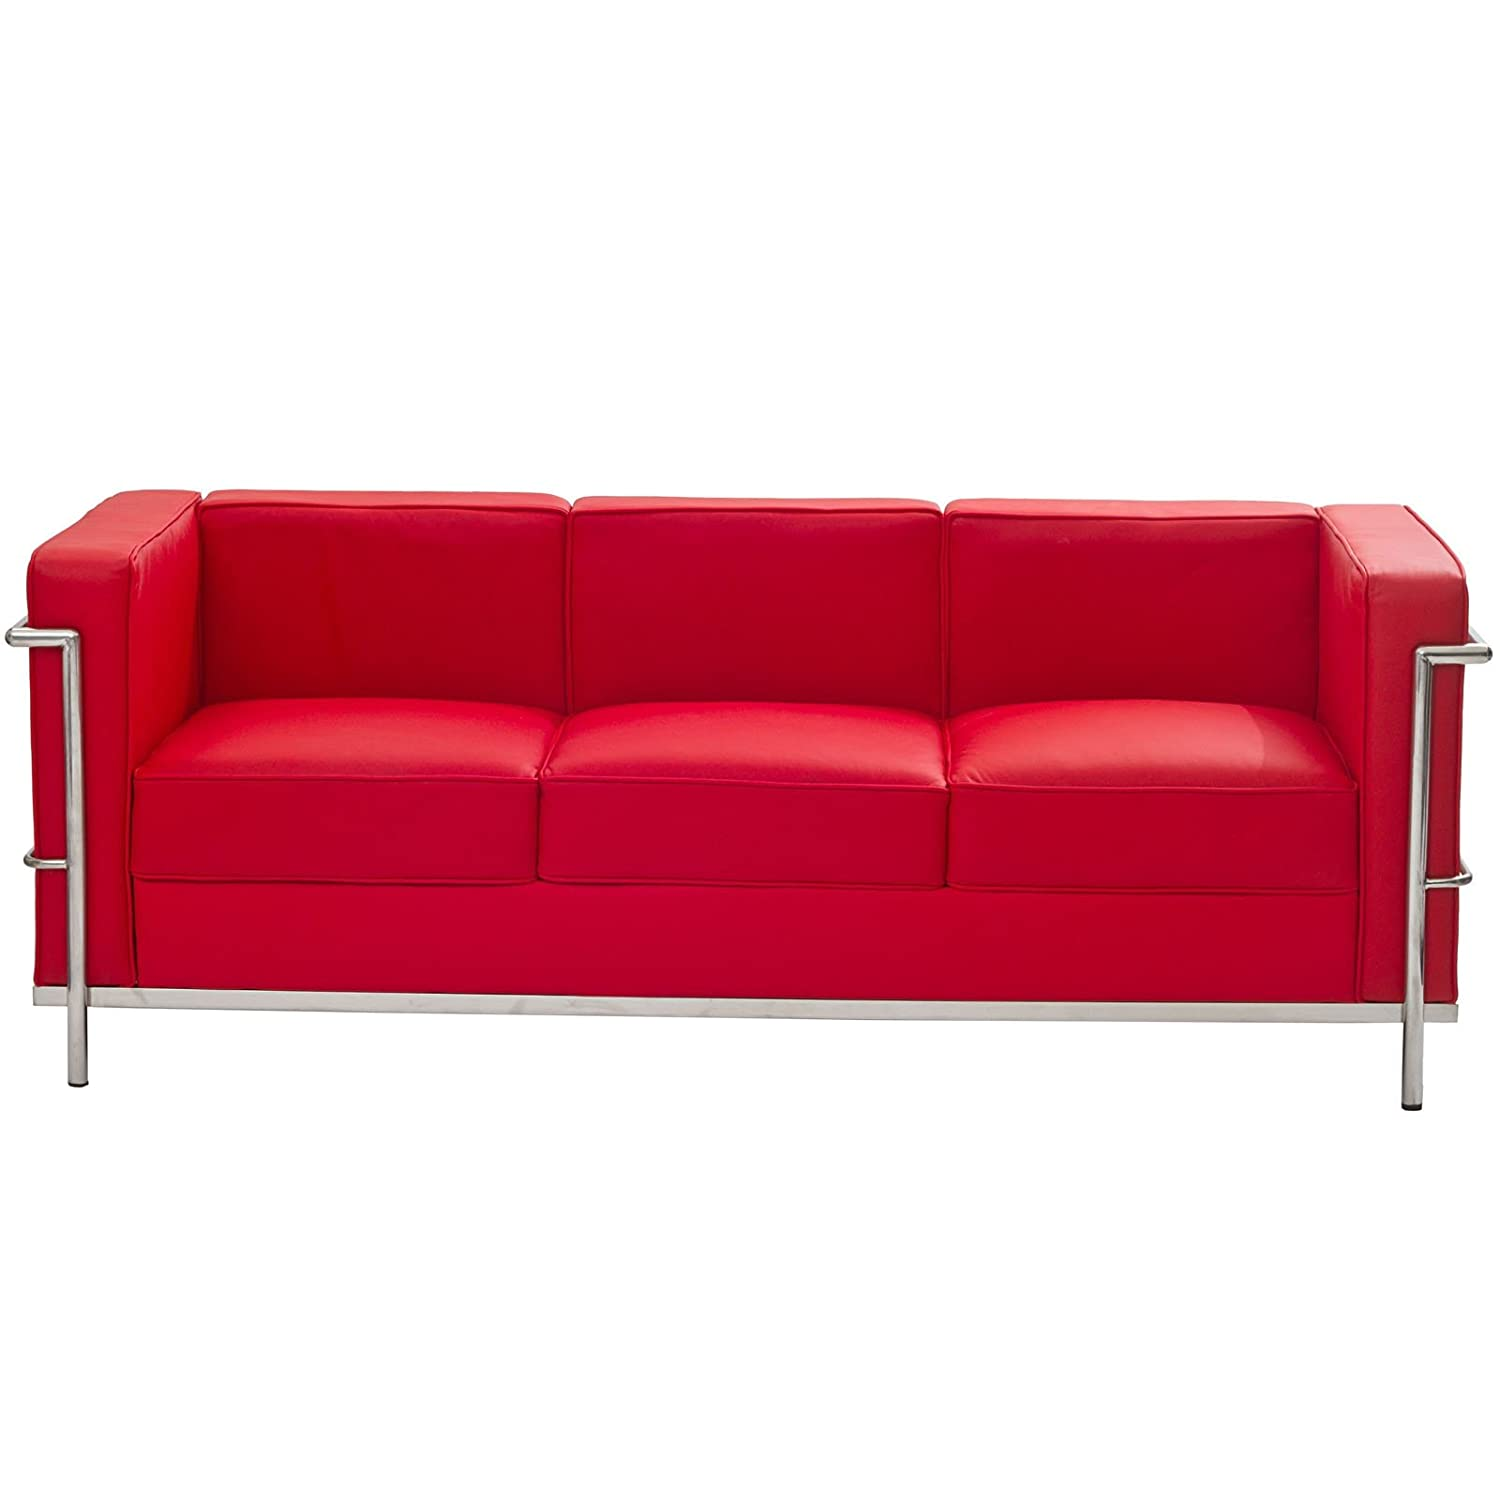 leather office couch. amazoncom modway charles leather petite sofa in red kitchen u0026 dining office couch